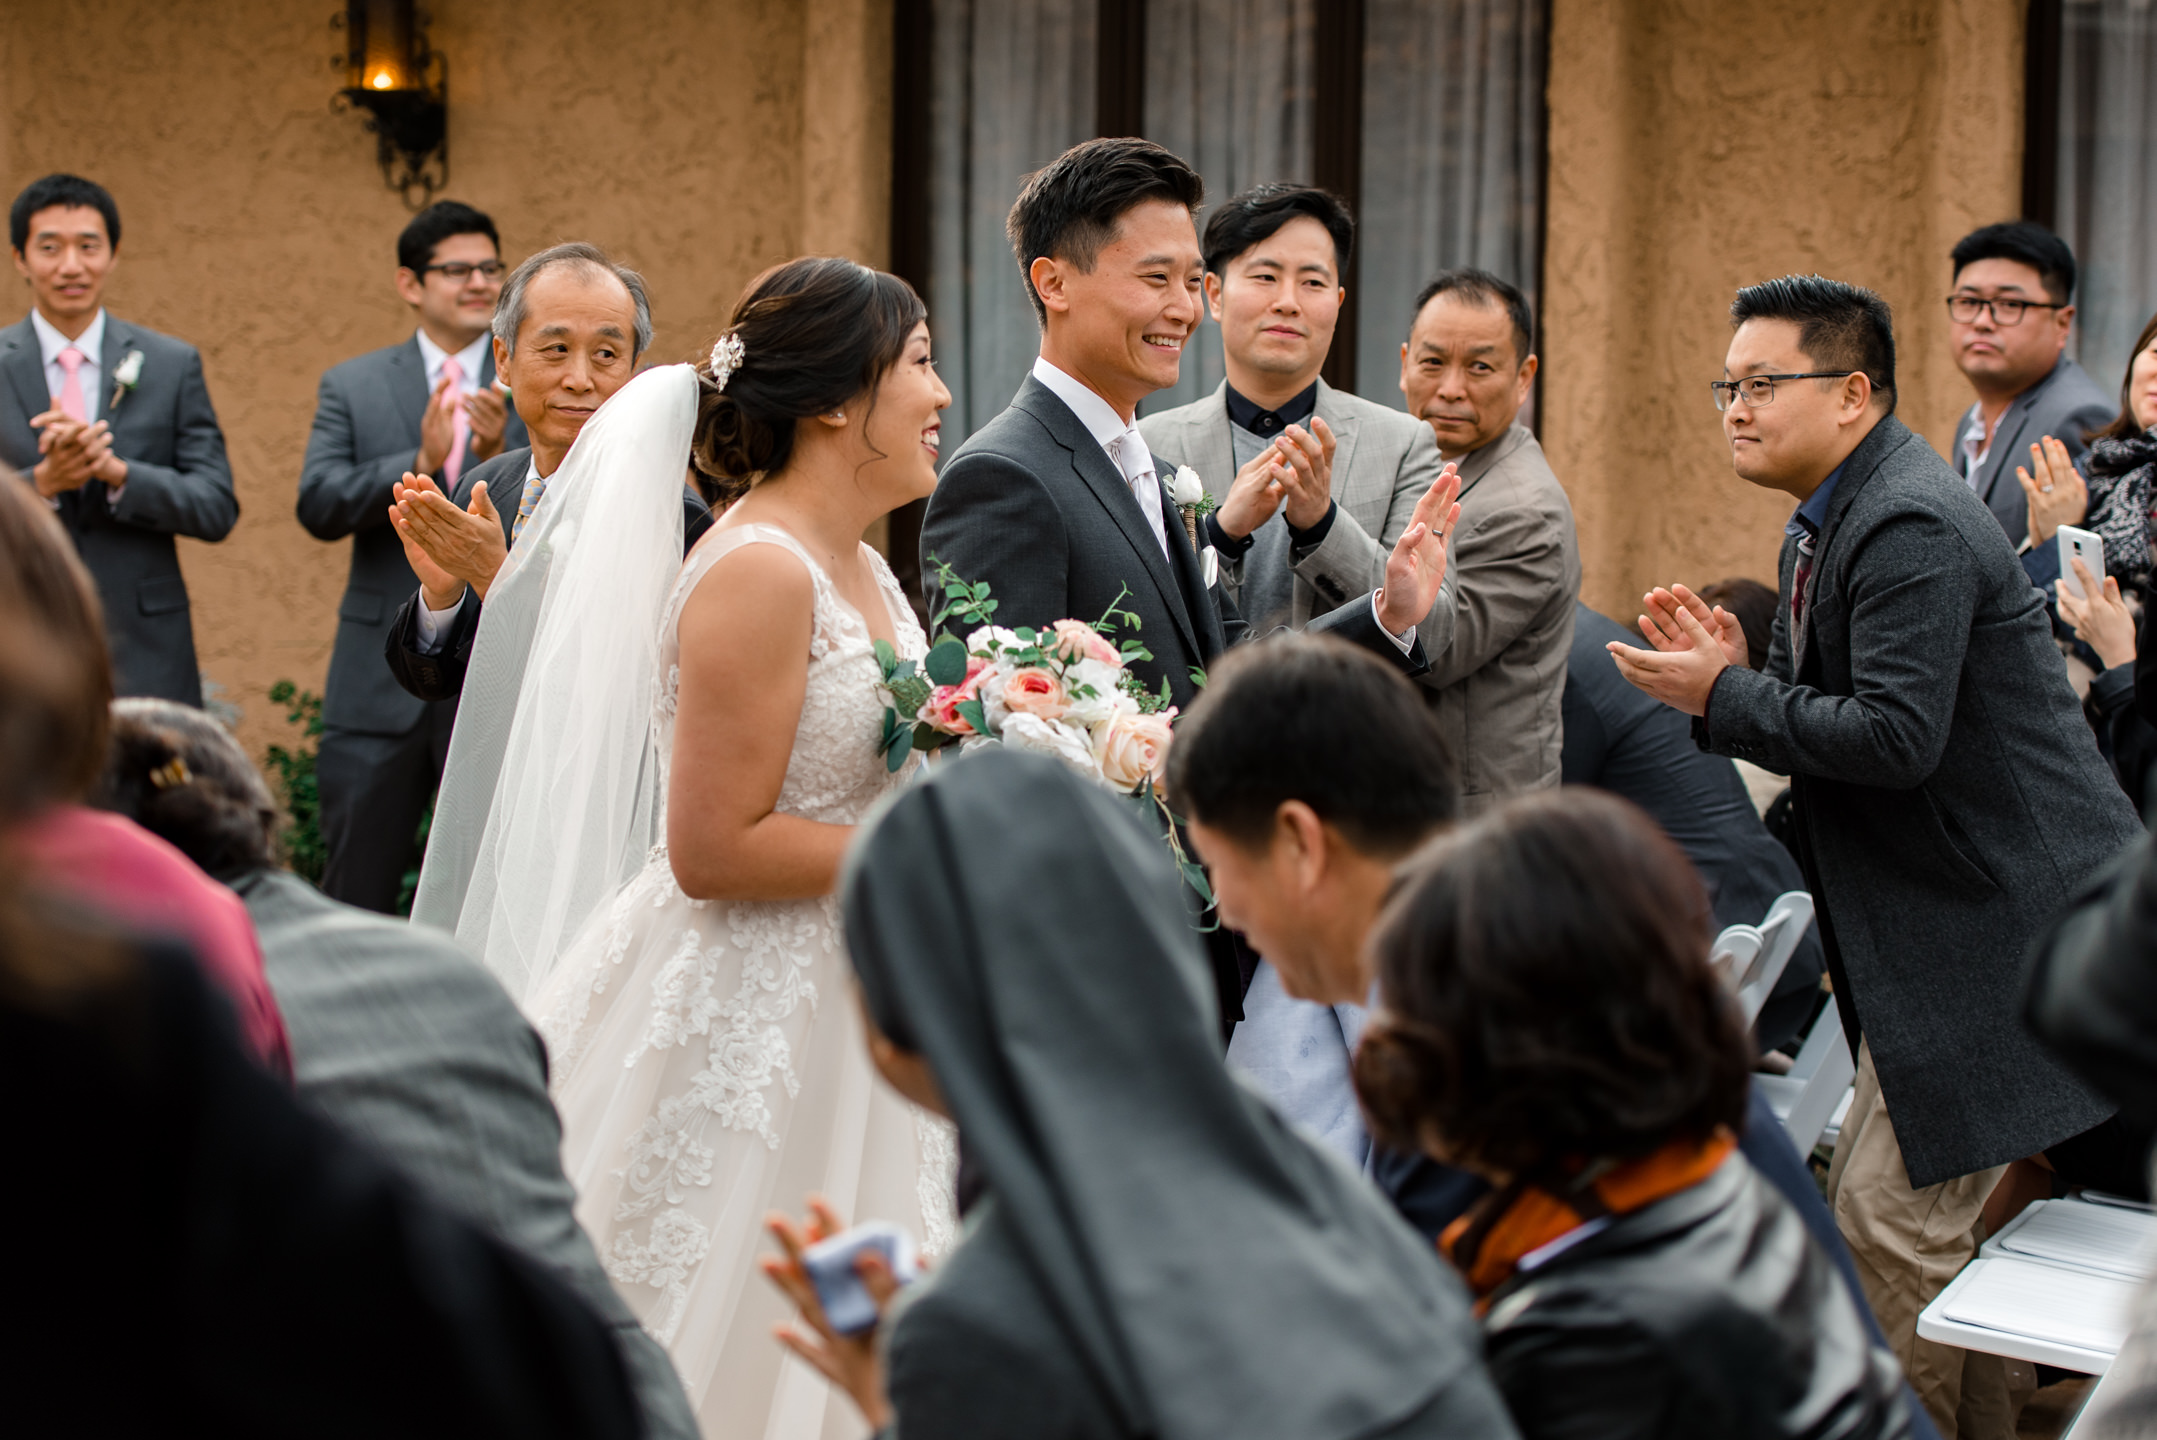 Asian Bride Groom Walk Down Aisle at Villa Parker